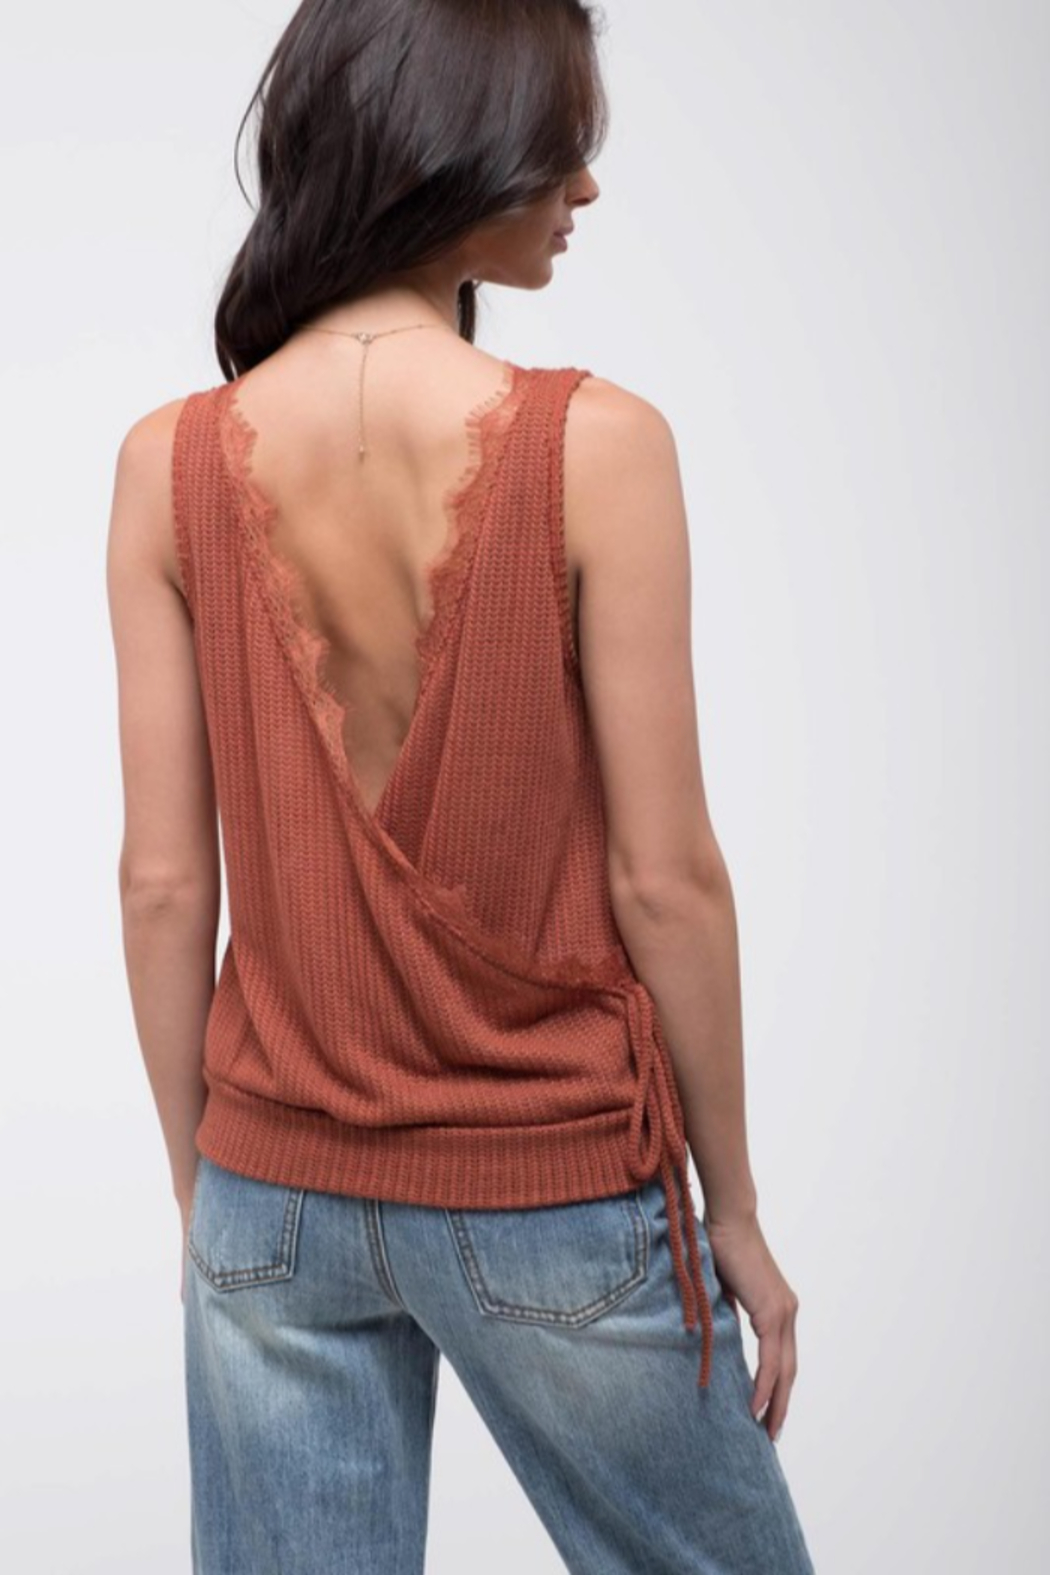 blu Pepper  Knit Sweater Tank with Open Back - Main Image